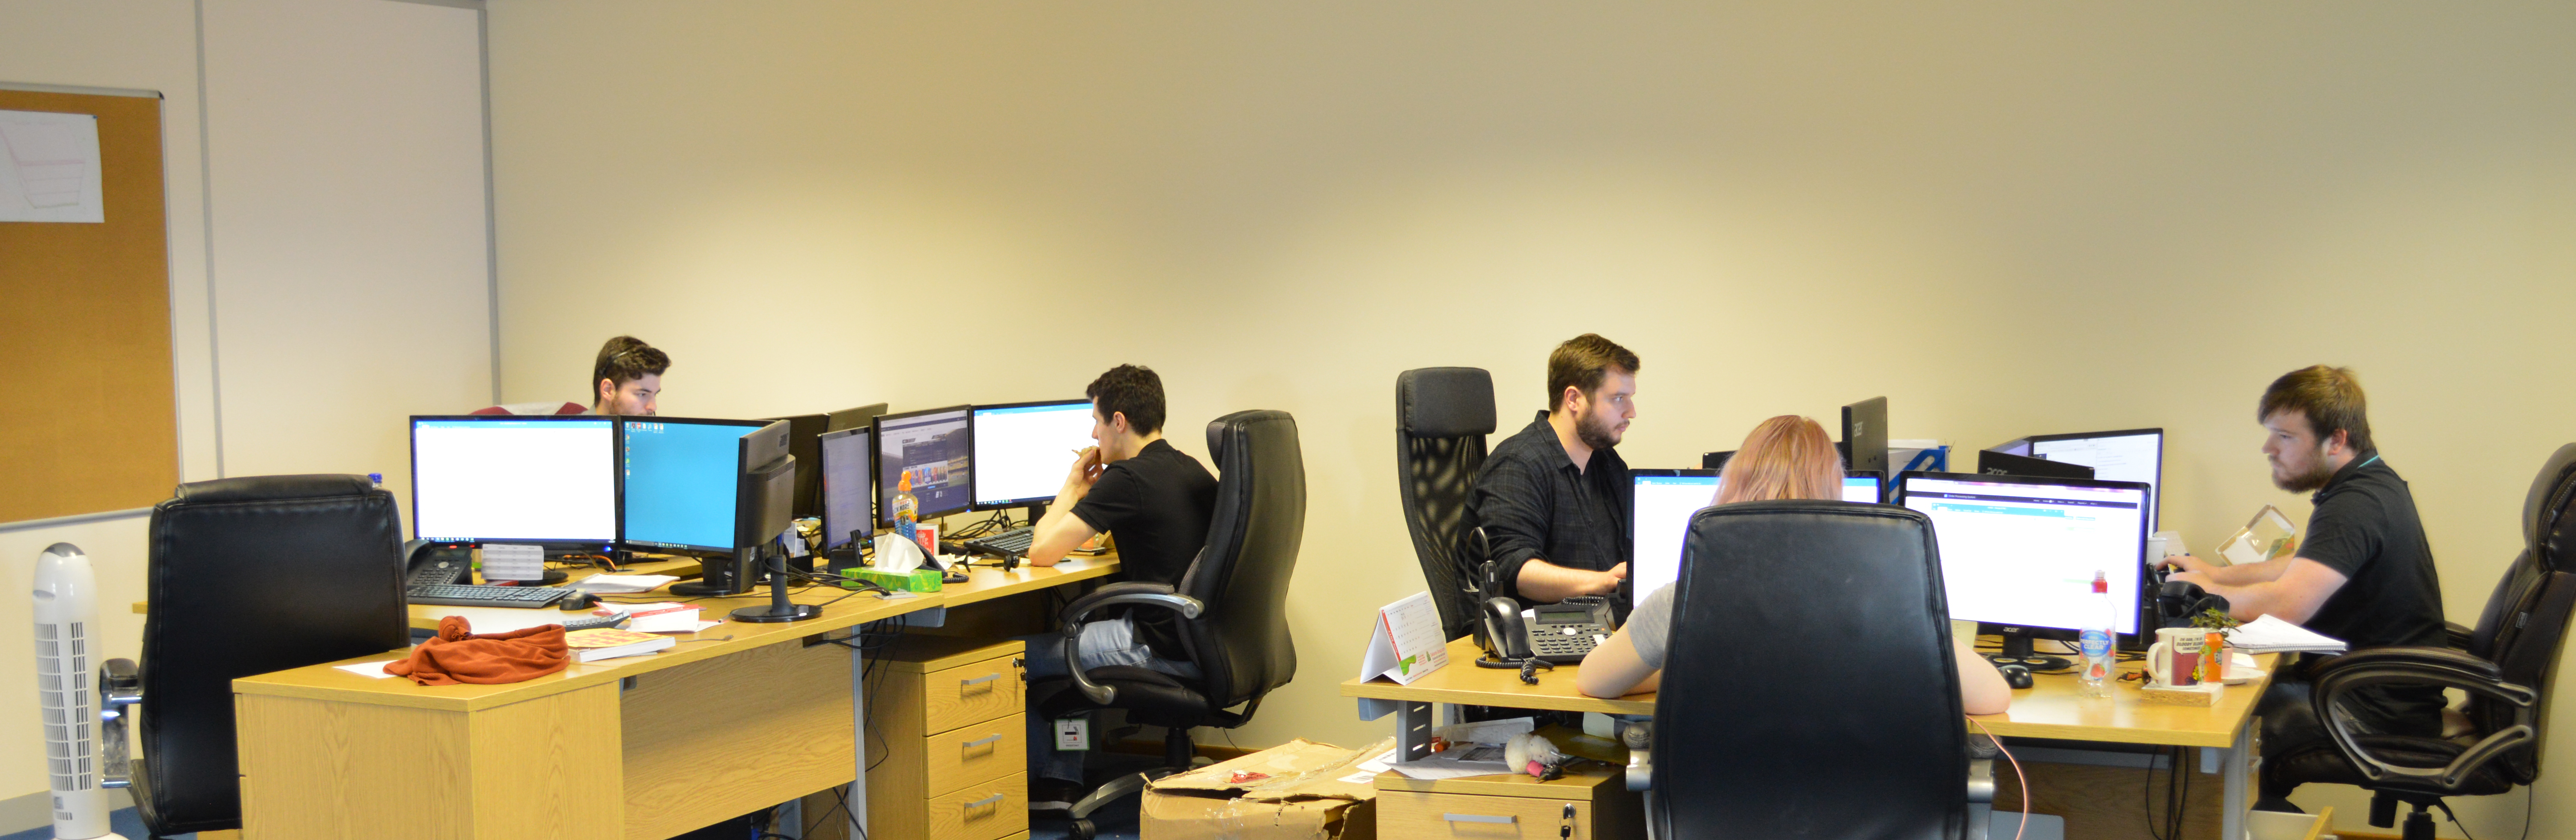 photo of team in office